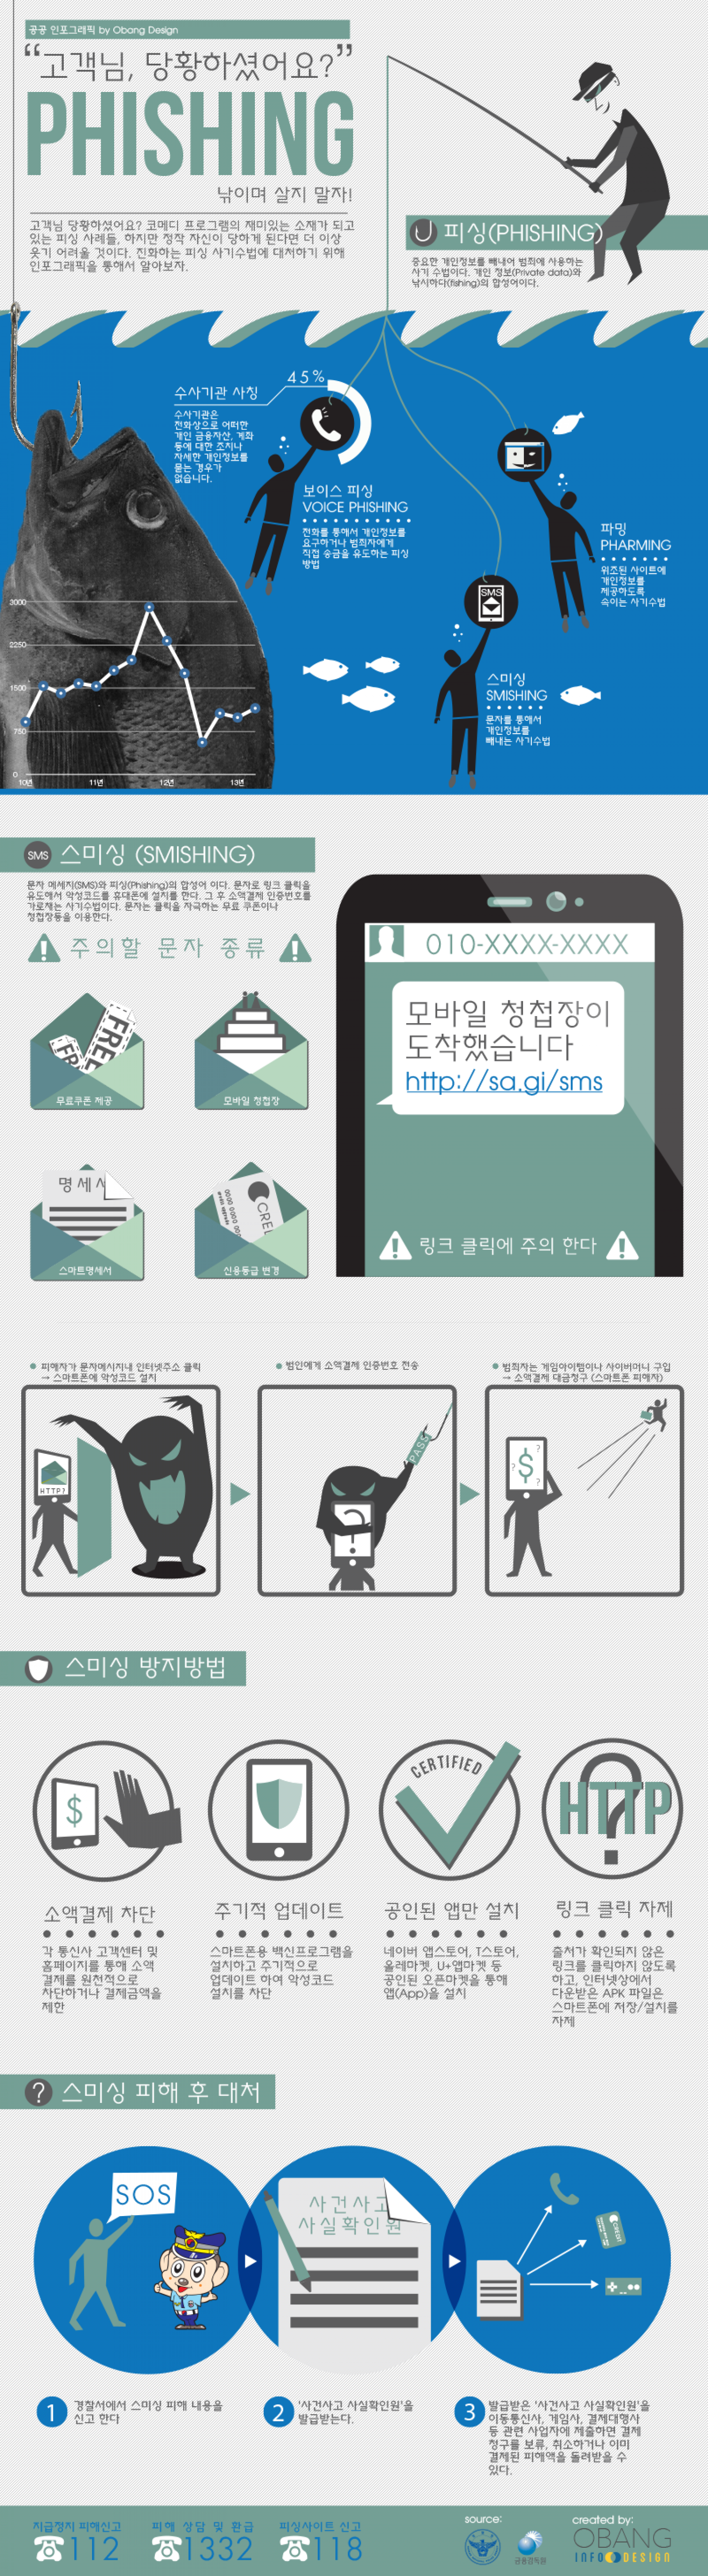 Phishing, Don't be a victom Infographic